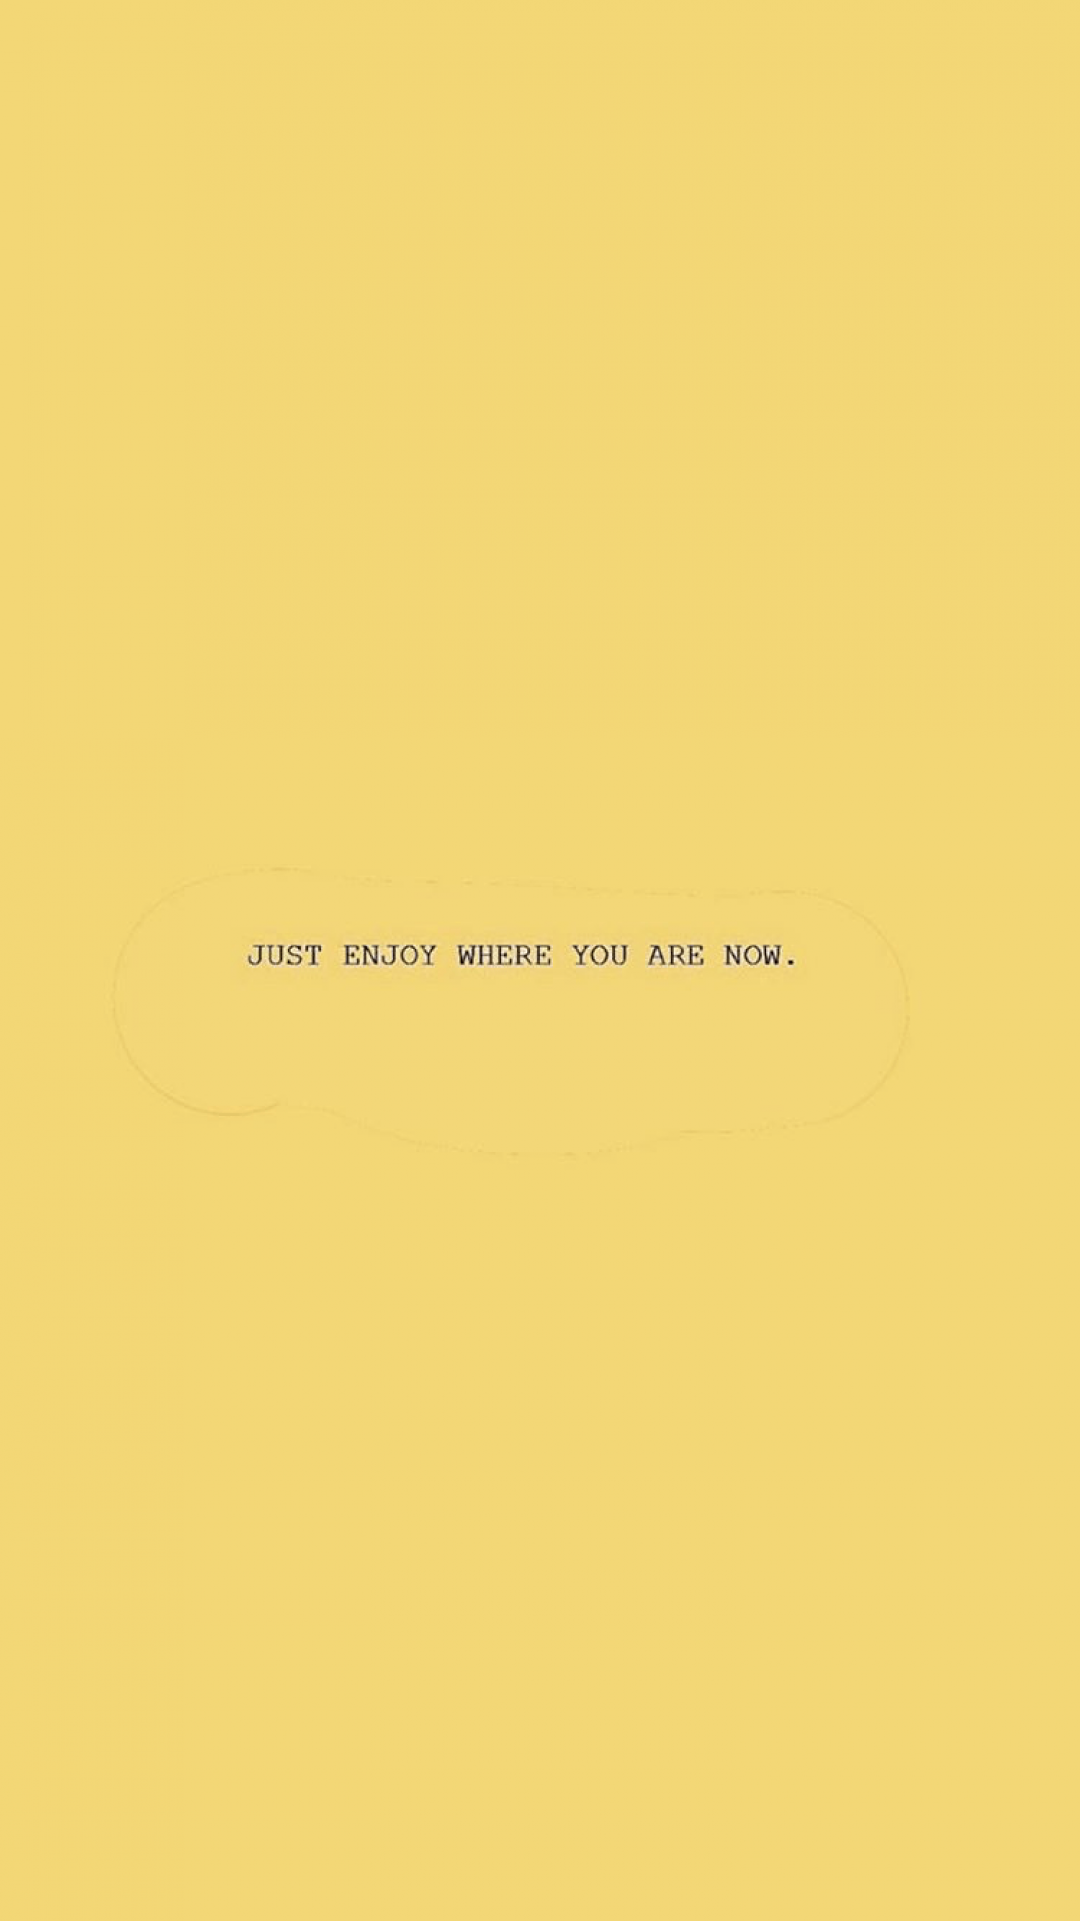 Sad Aesthetic Quotes Wallpaper Desktop